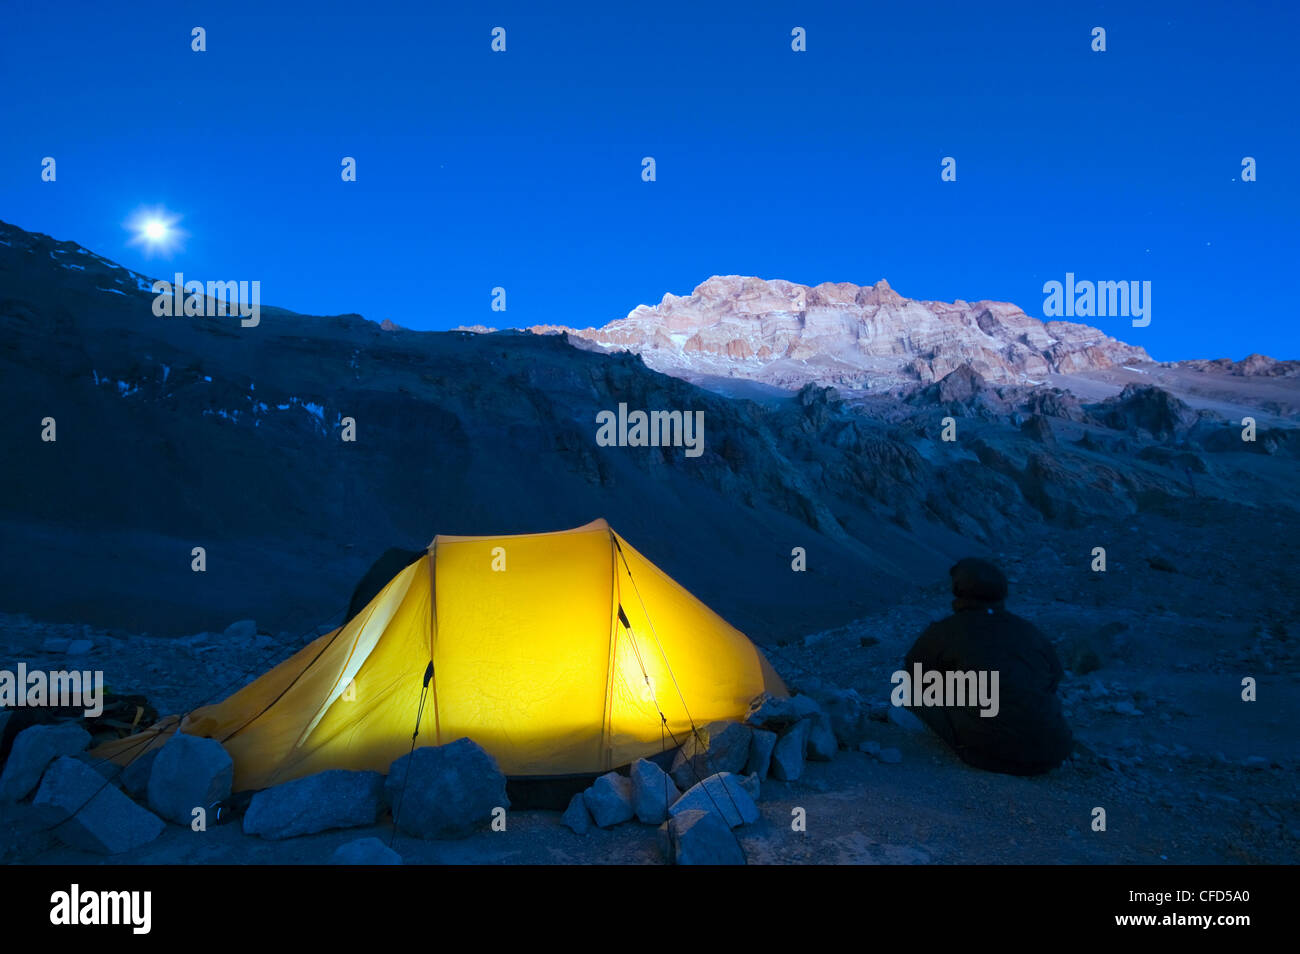 Illuminated tent at Plaza de Mulas base camp, Aconcagua, Aconcagua Provincial Park, Andes mountains, Argentina - Stock Image